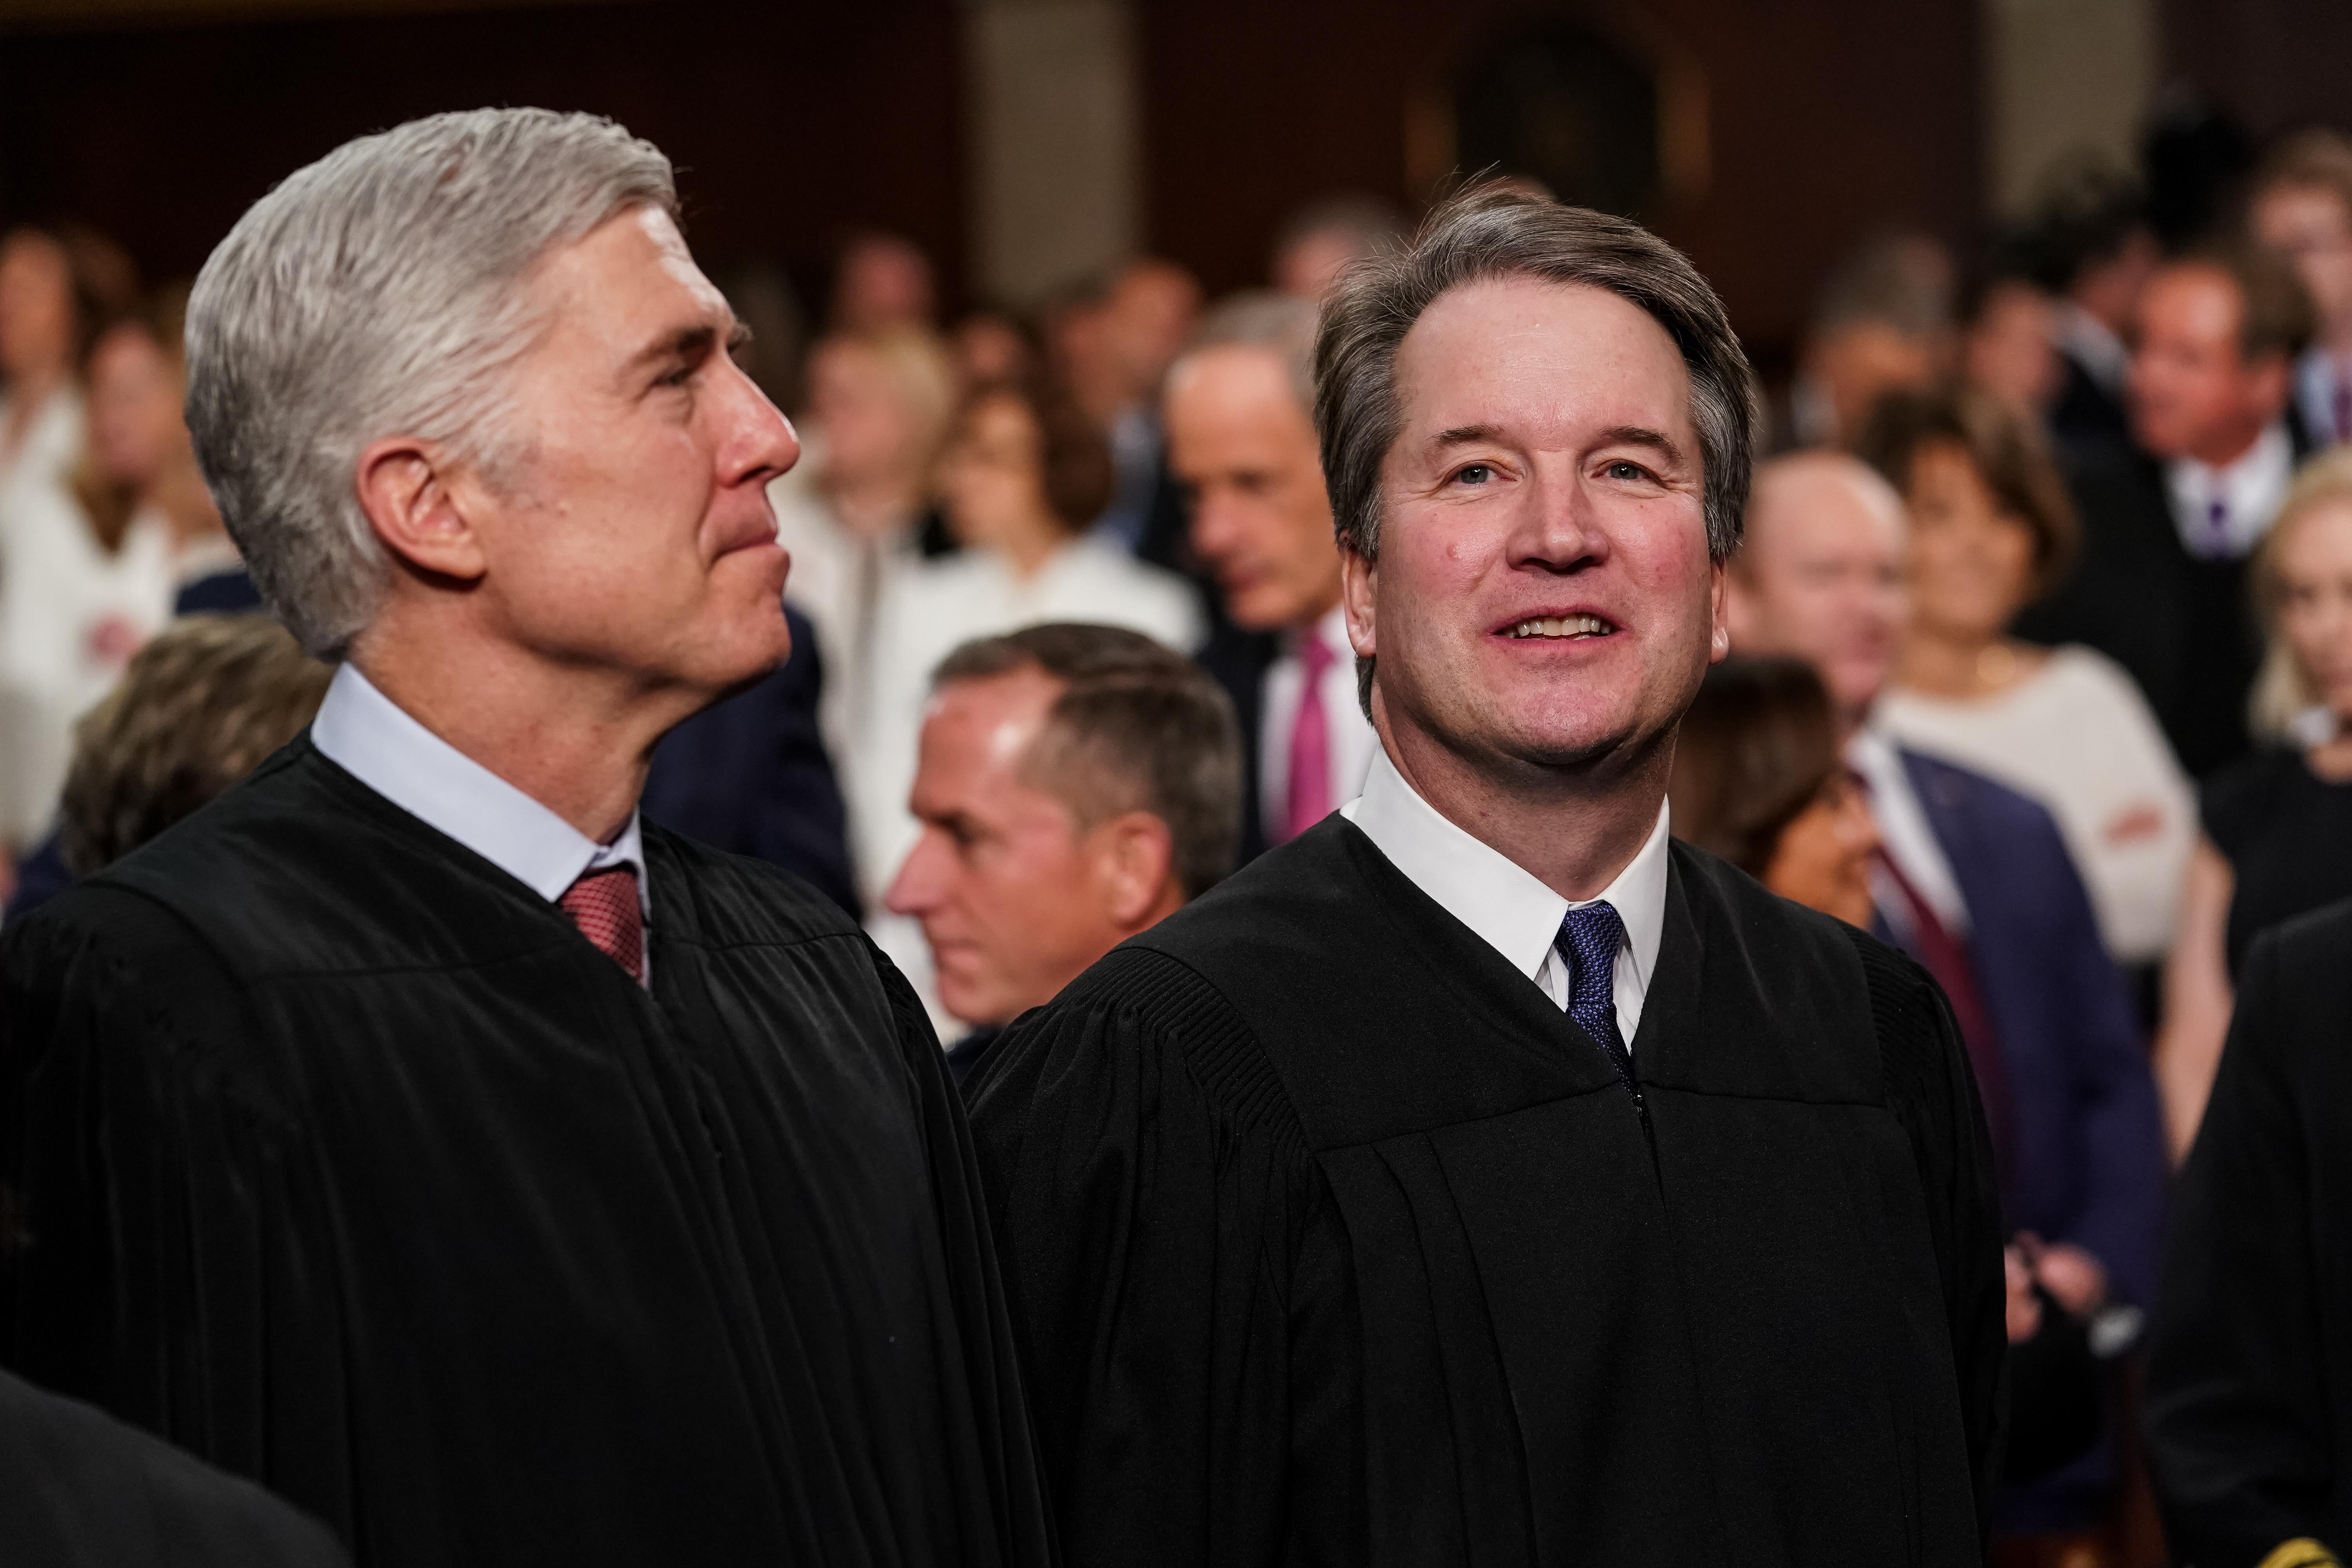 Supreme Court Justices Neil Gorsuch and Brett Kavanaugh attend the State of the Union address on Feb. 5.